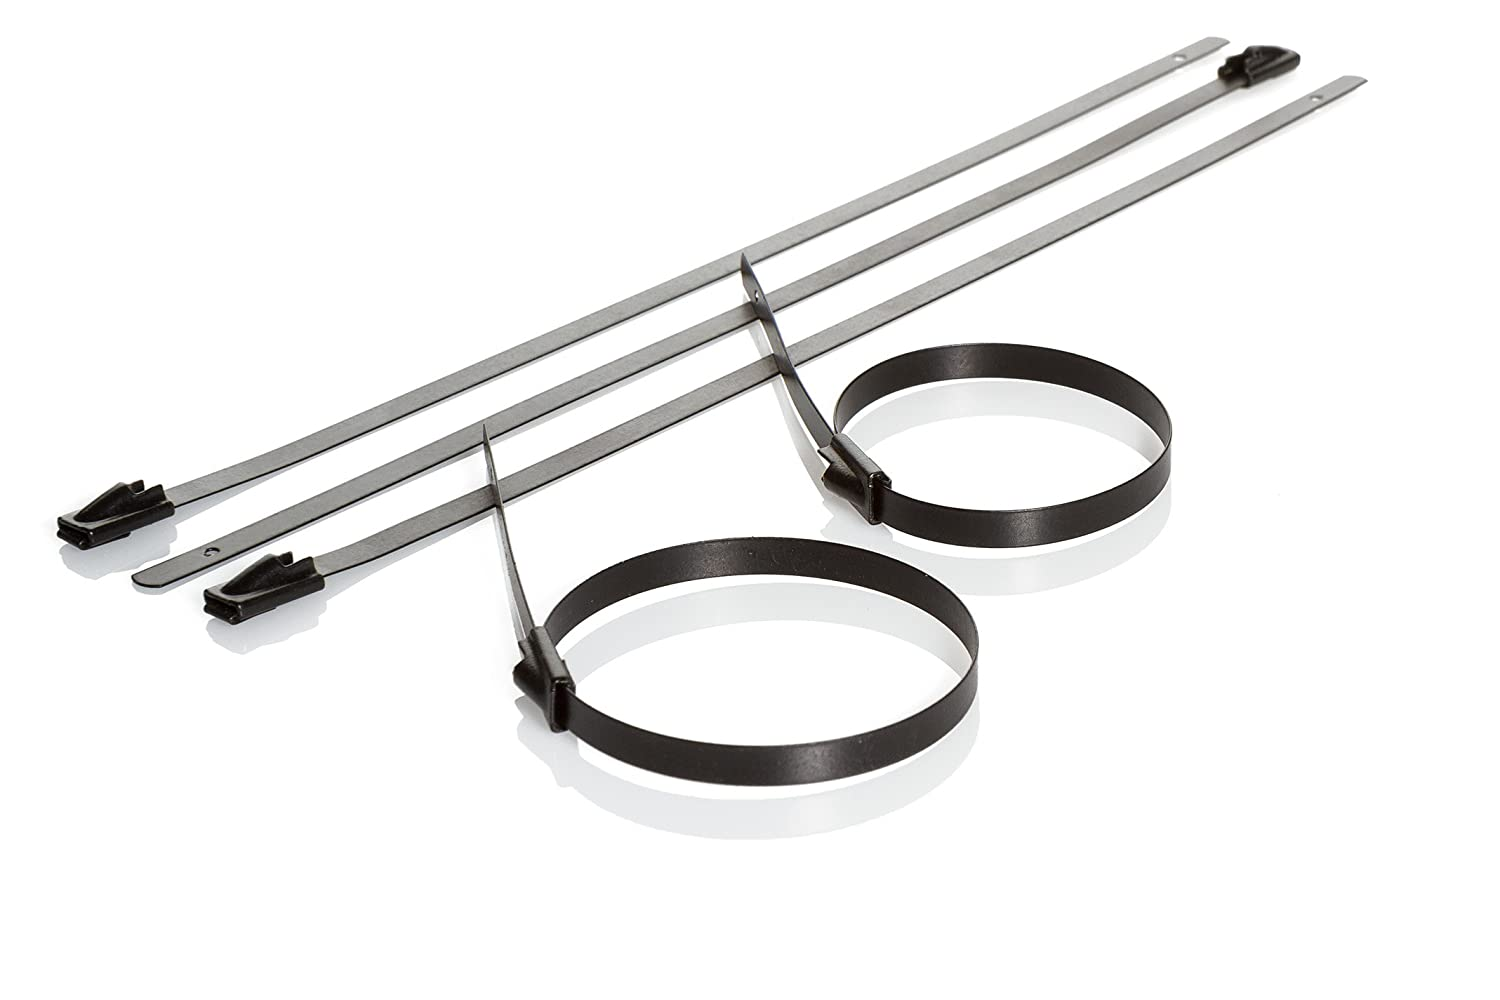 5986e13d83ce Partex Stainless Steel Cable Ties (Black) 100 x 4.6mm, pack of 100:  Amazon.co.uk: DIY & Tools